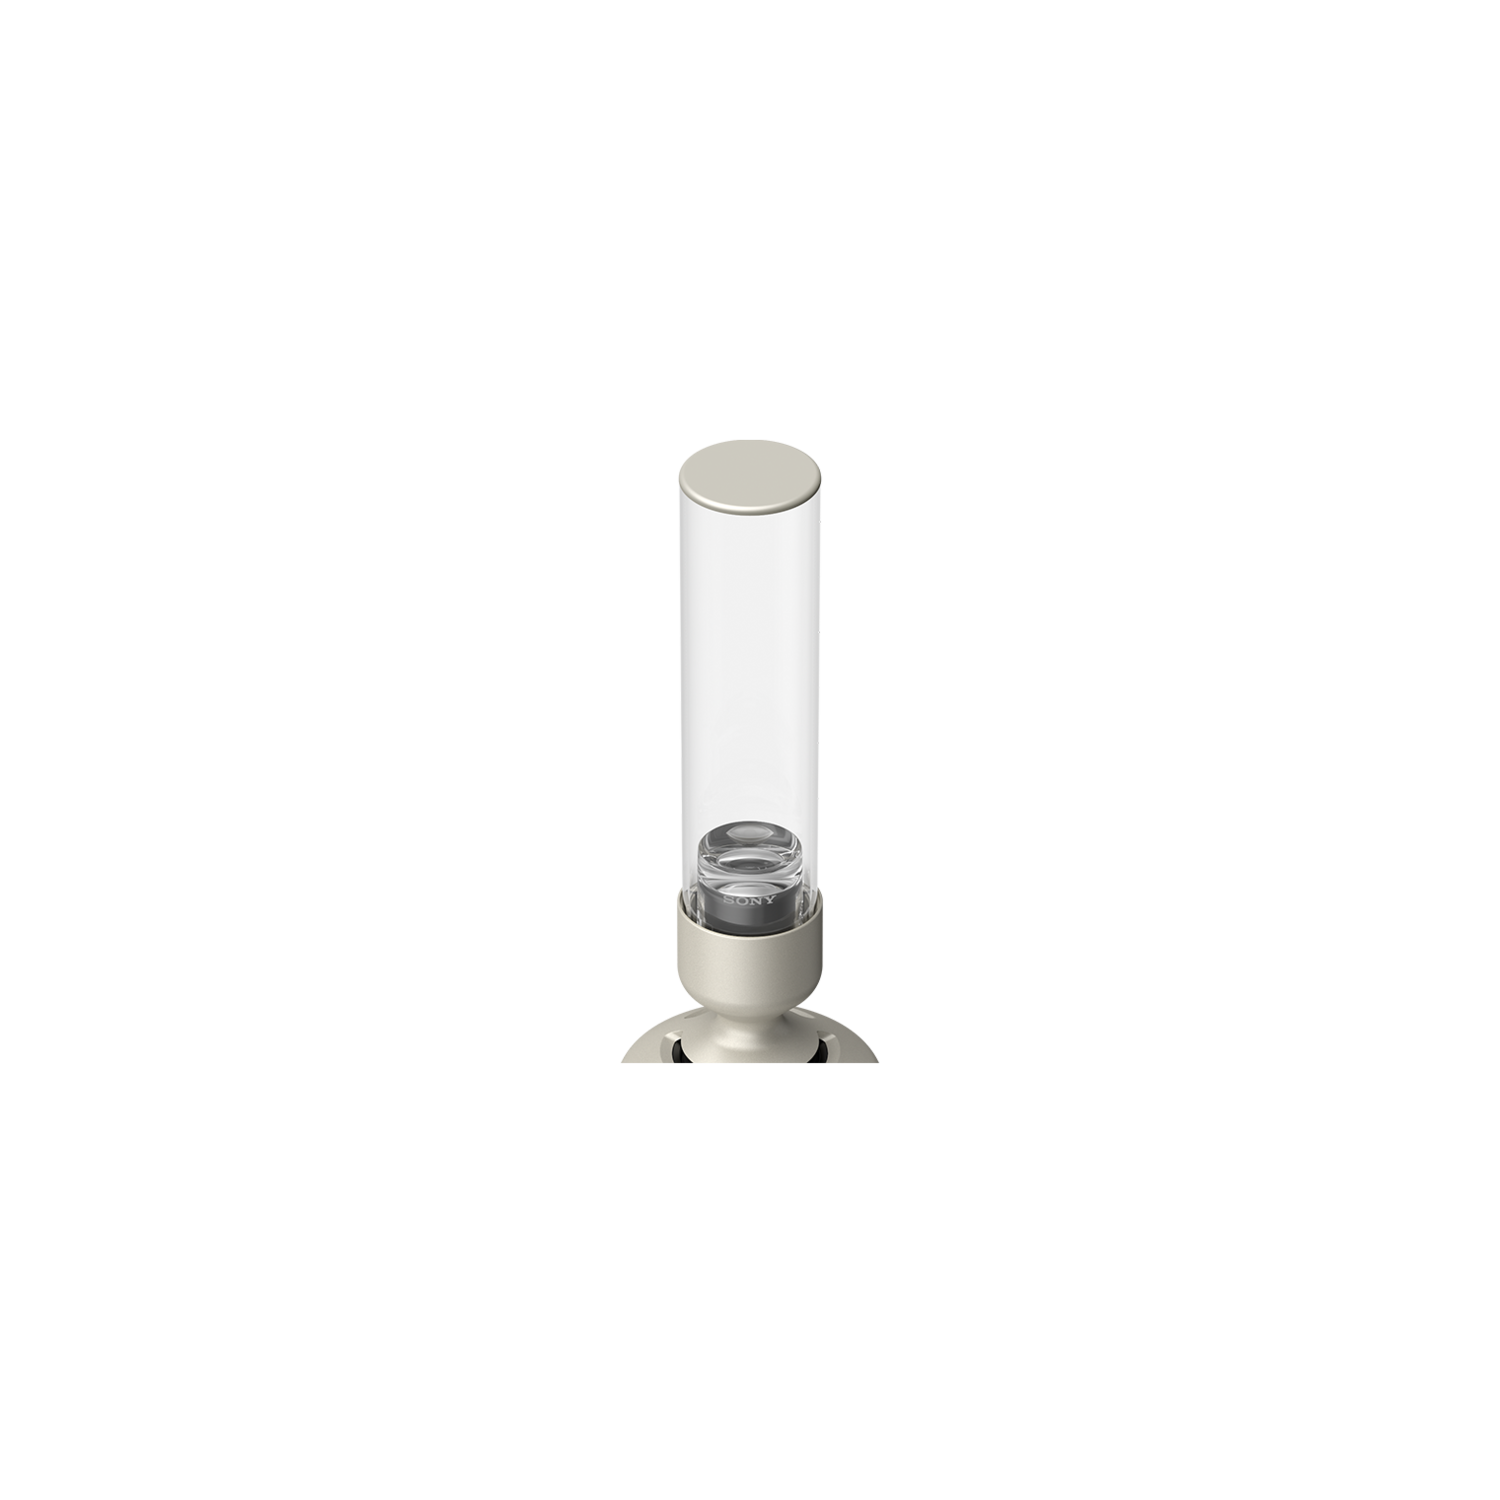 LSPX-S2 Glass Sound Speaker, , product-image